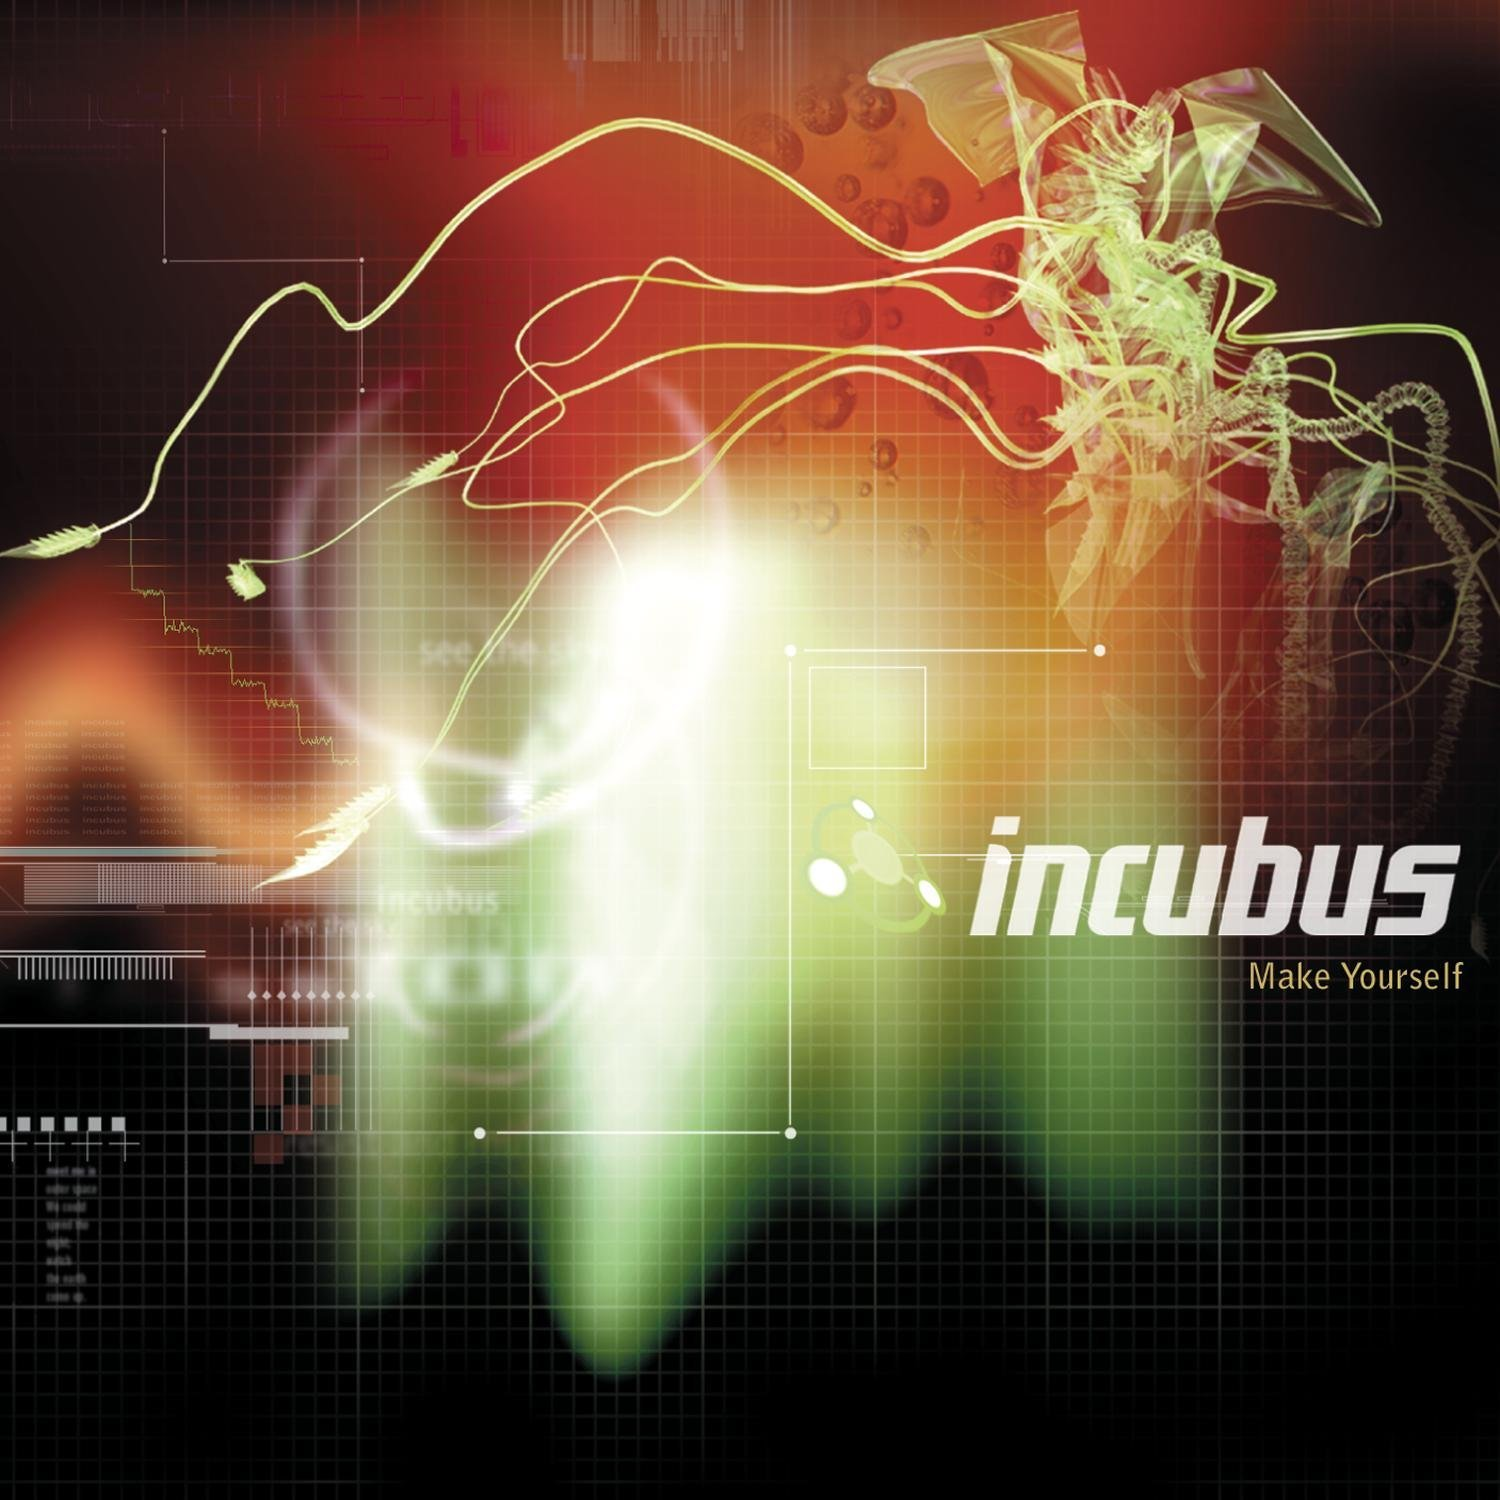 Incubus, Make Yourself